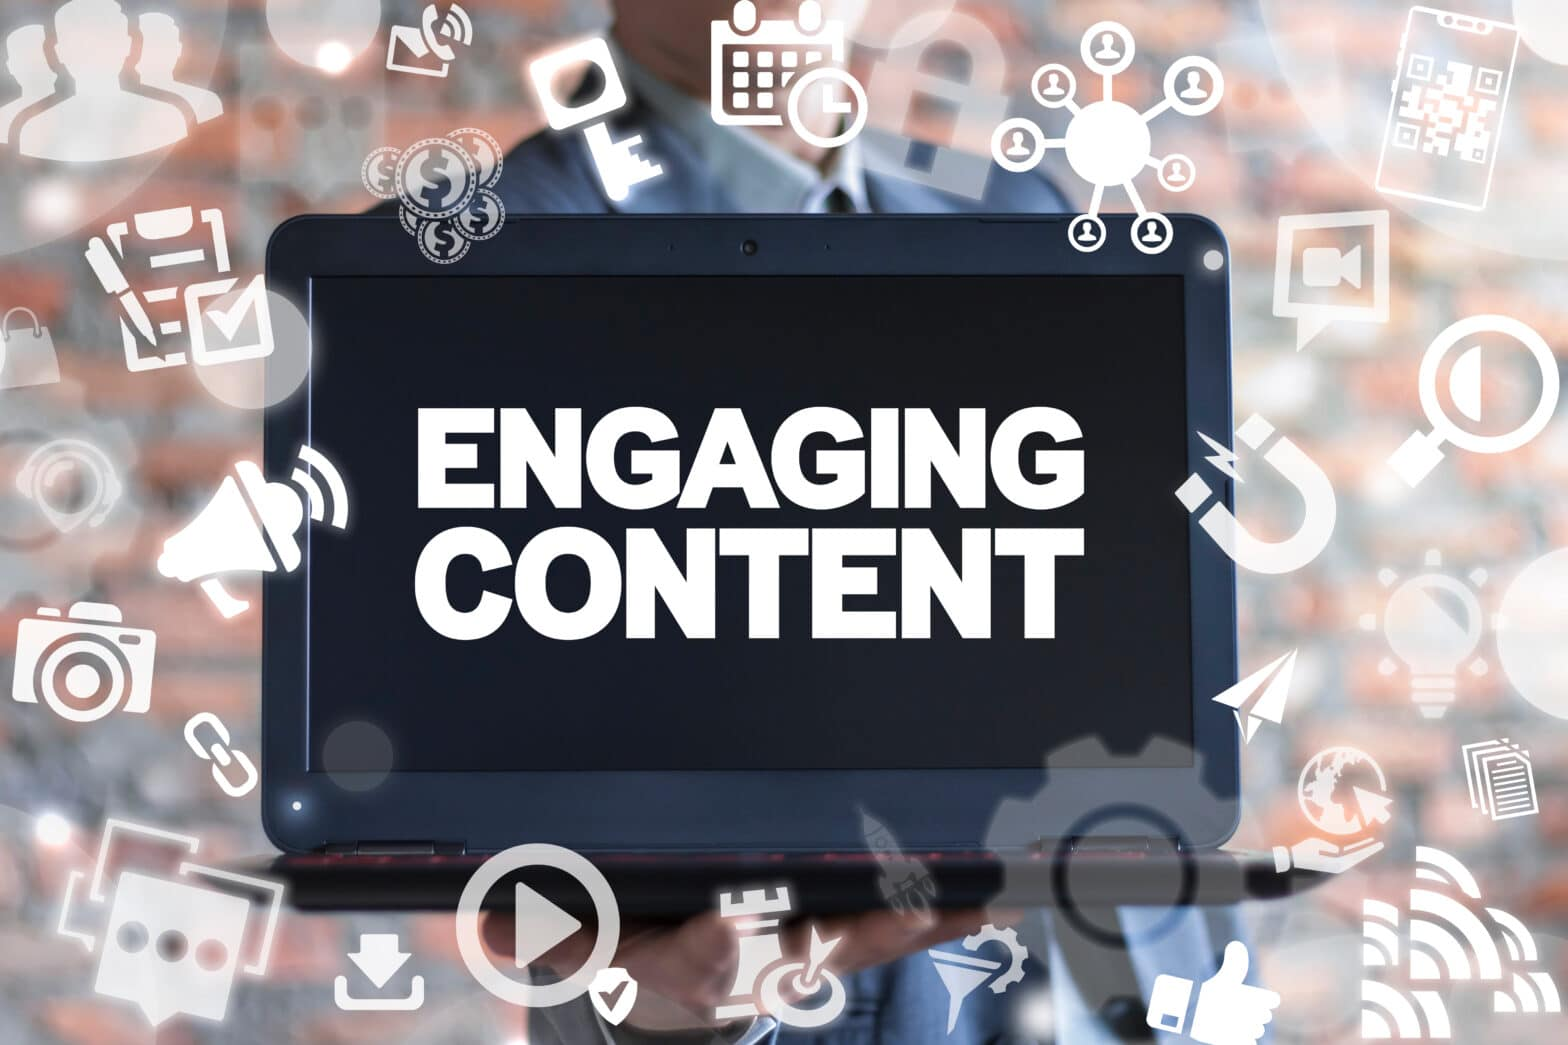 How does a traditional site drive engagement without frustrating users?